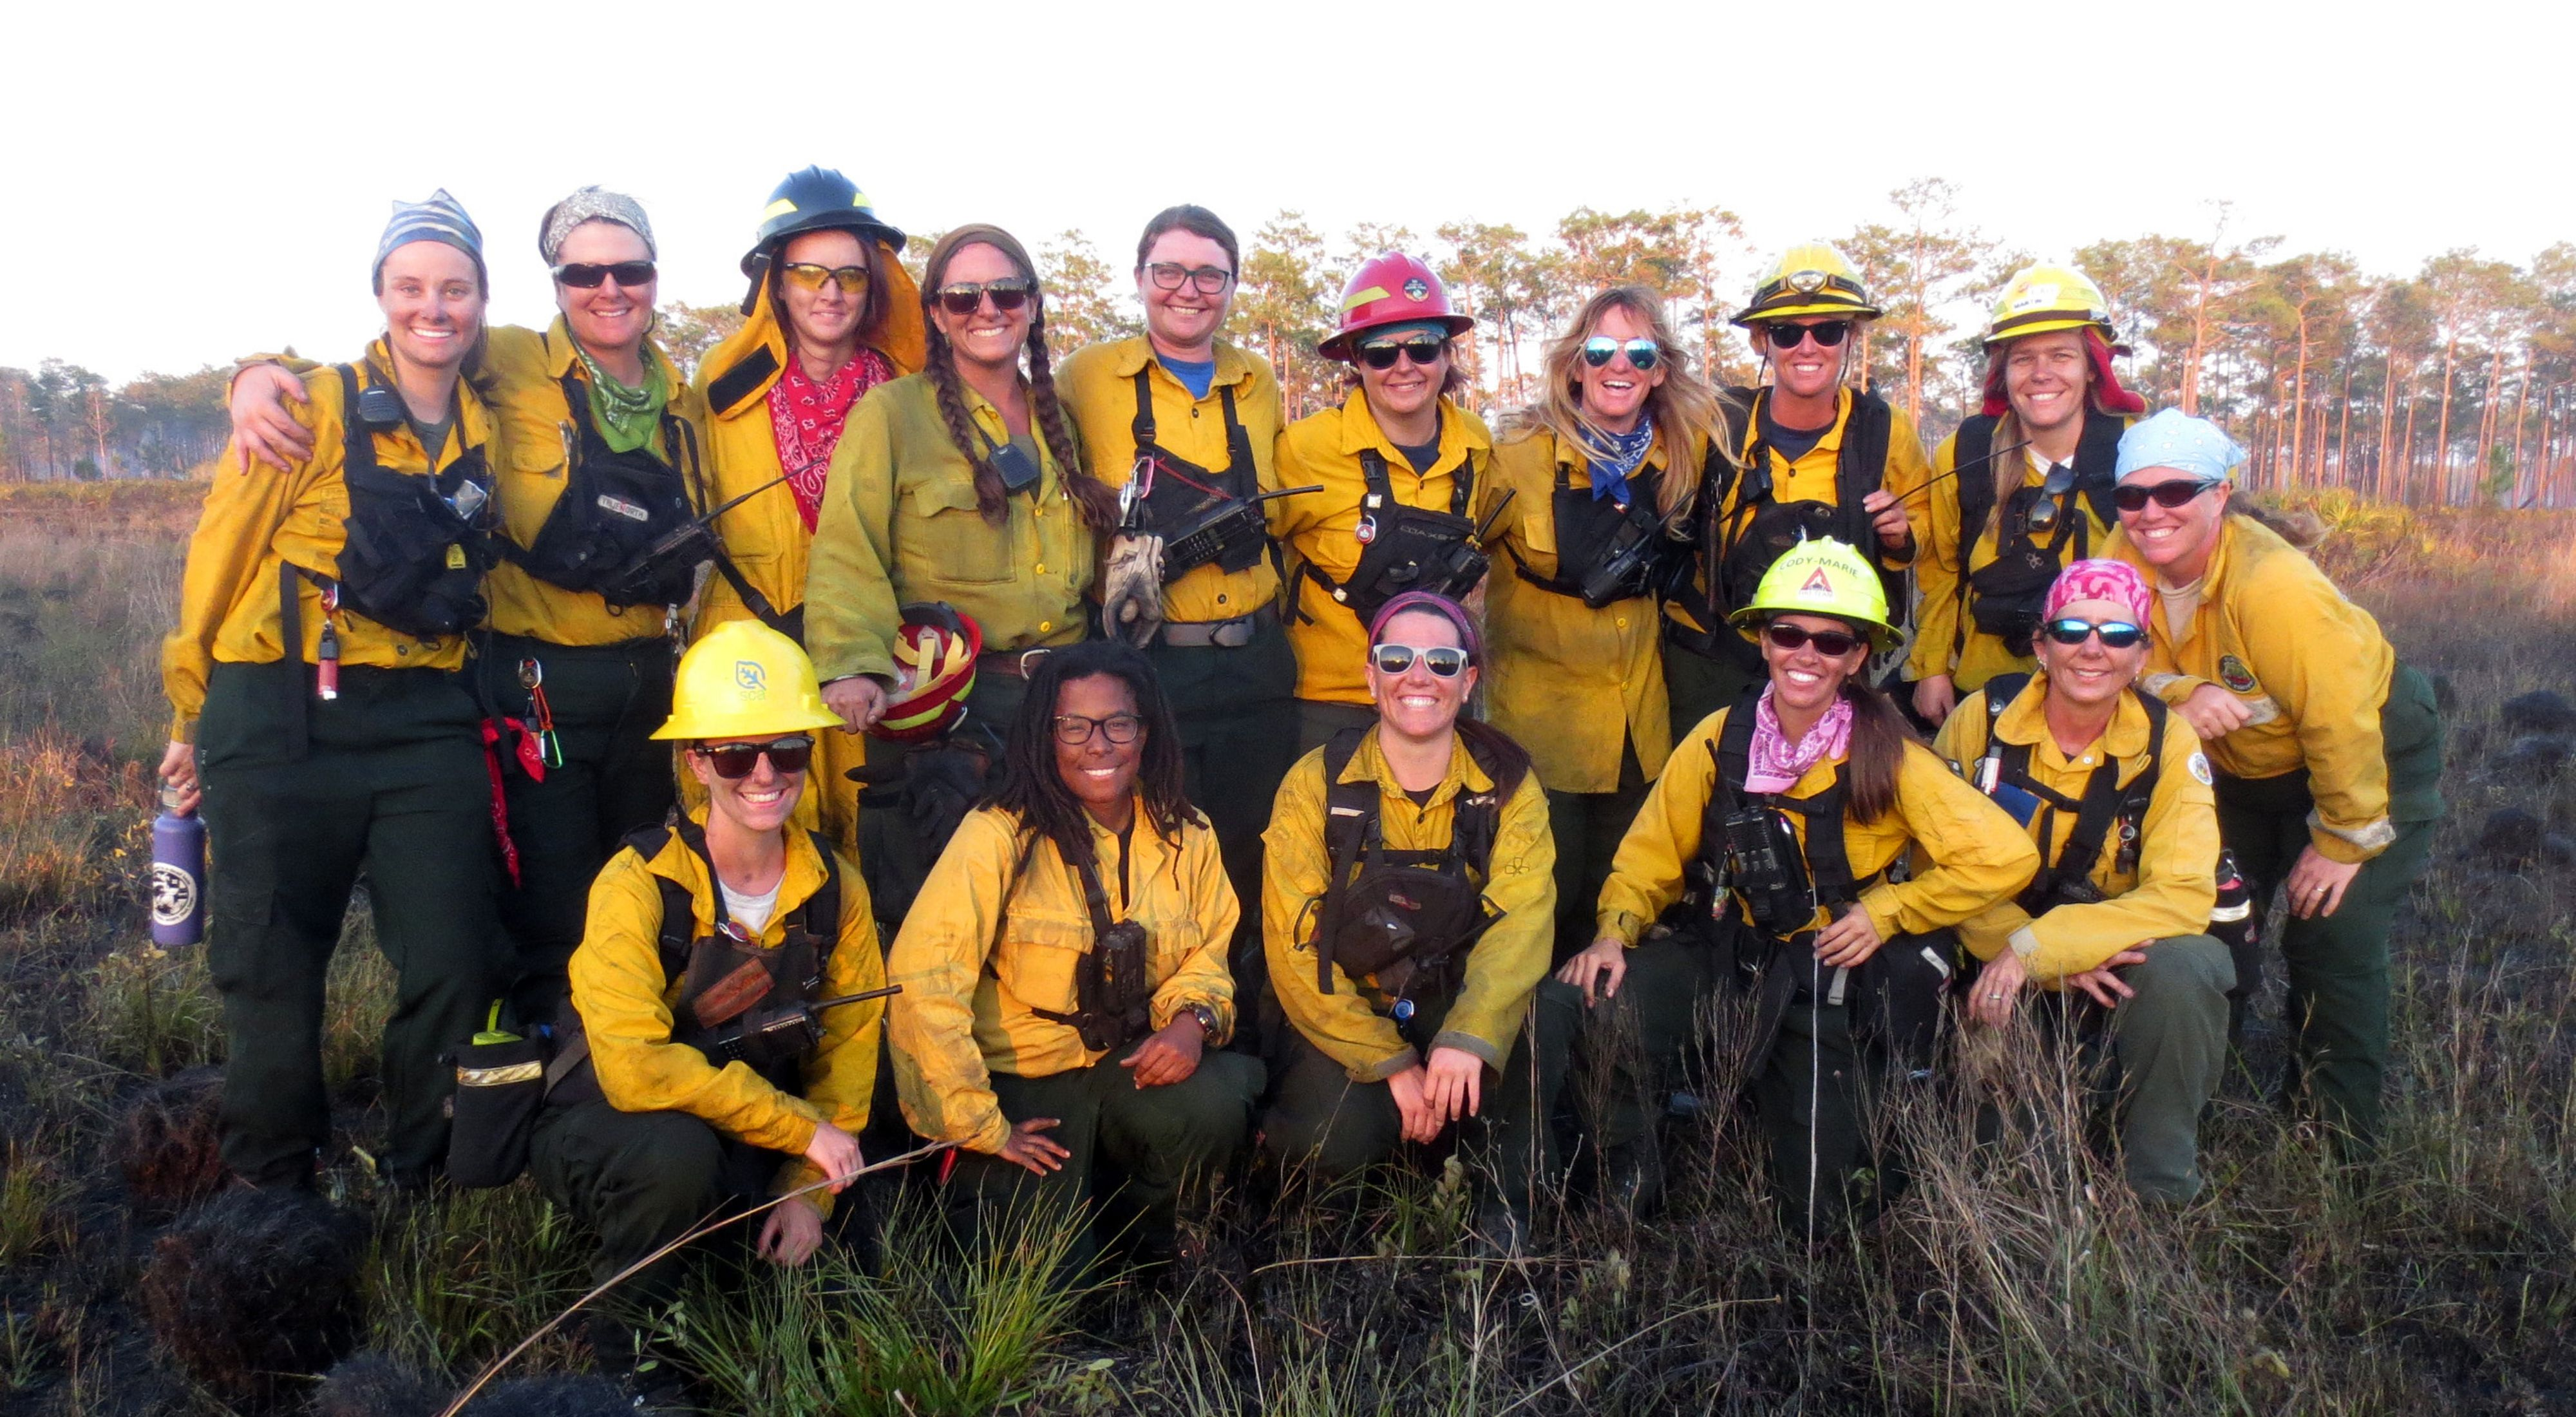 A group of about 15 smiling women in fire gear.